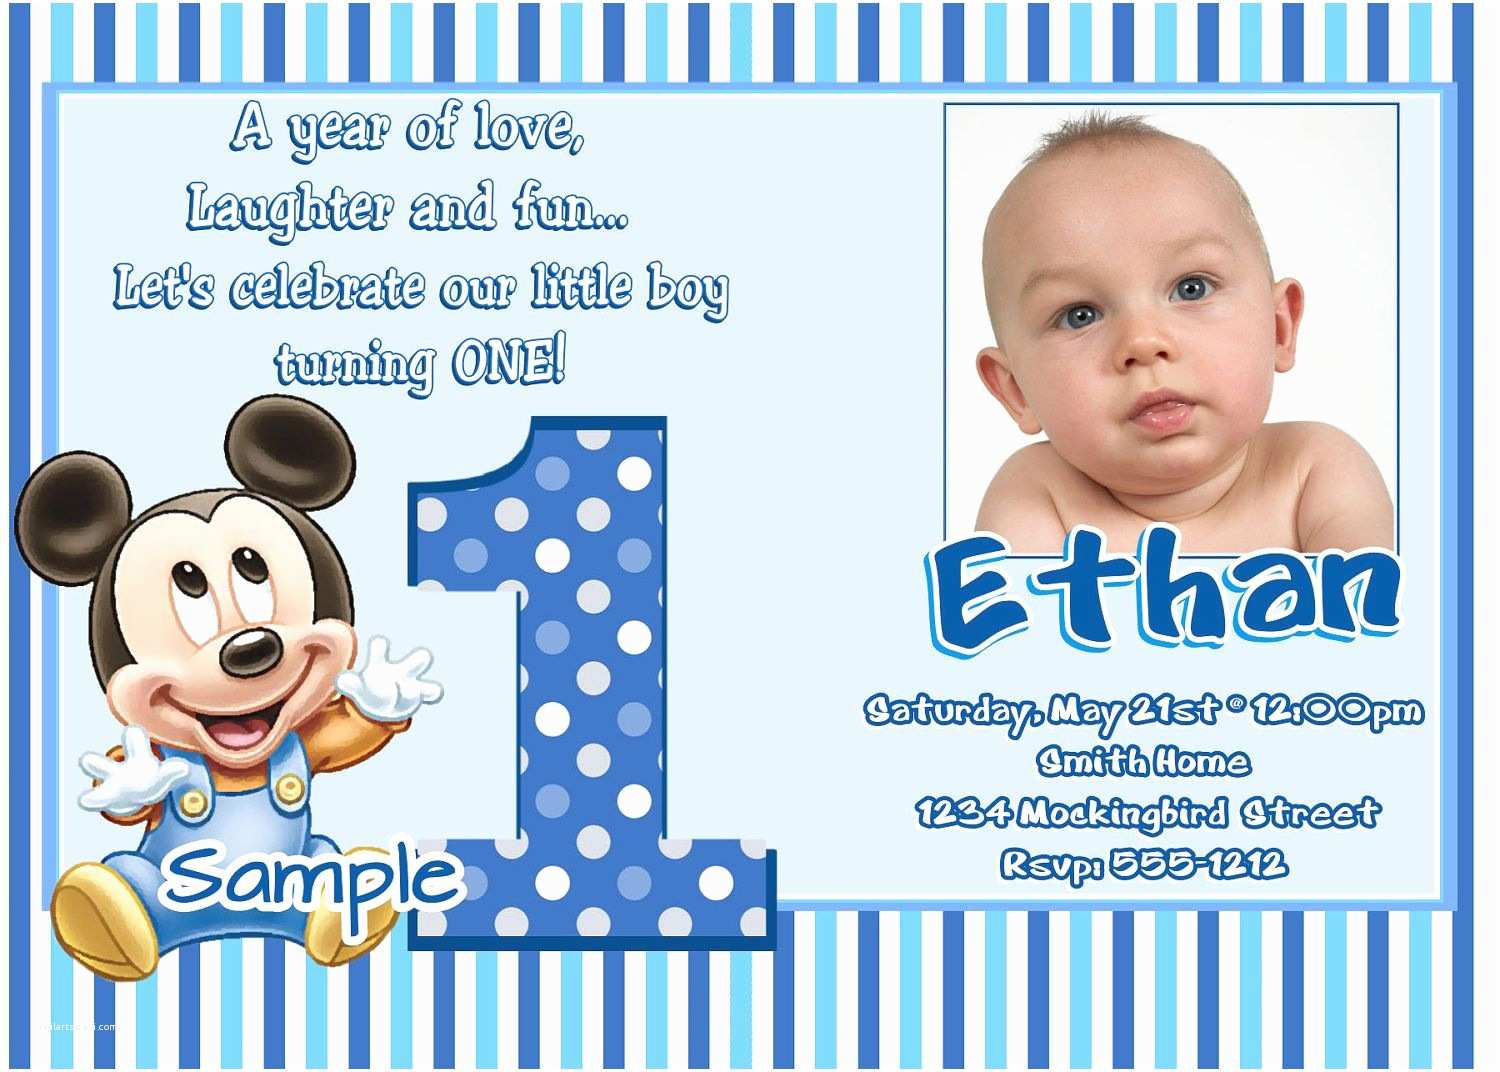 Boy Birthday Invitations Free 1st Birthday Invitation Maker